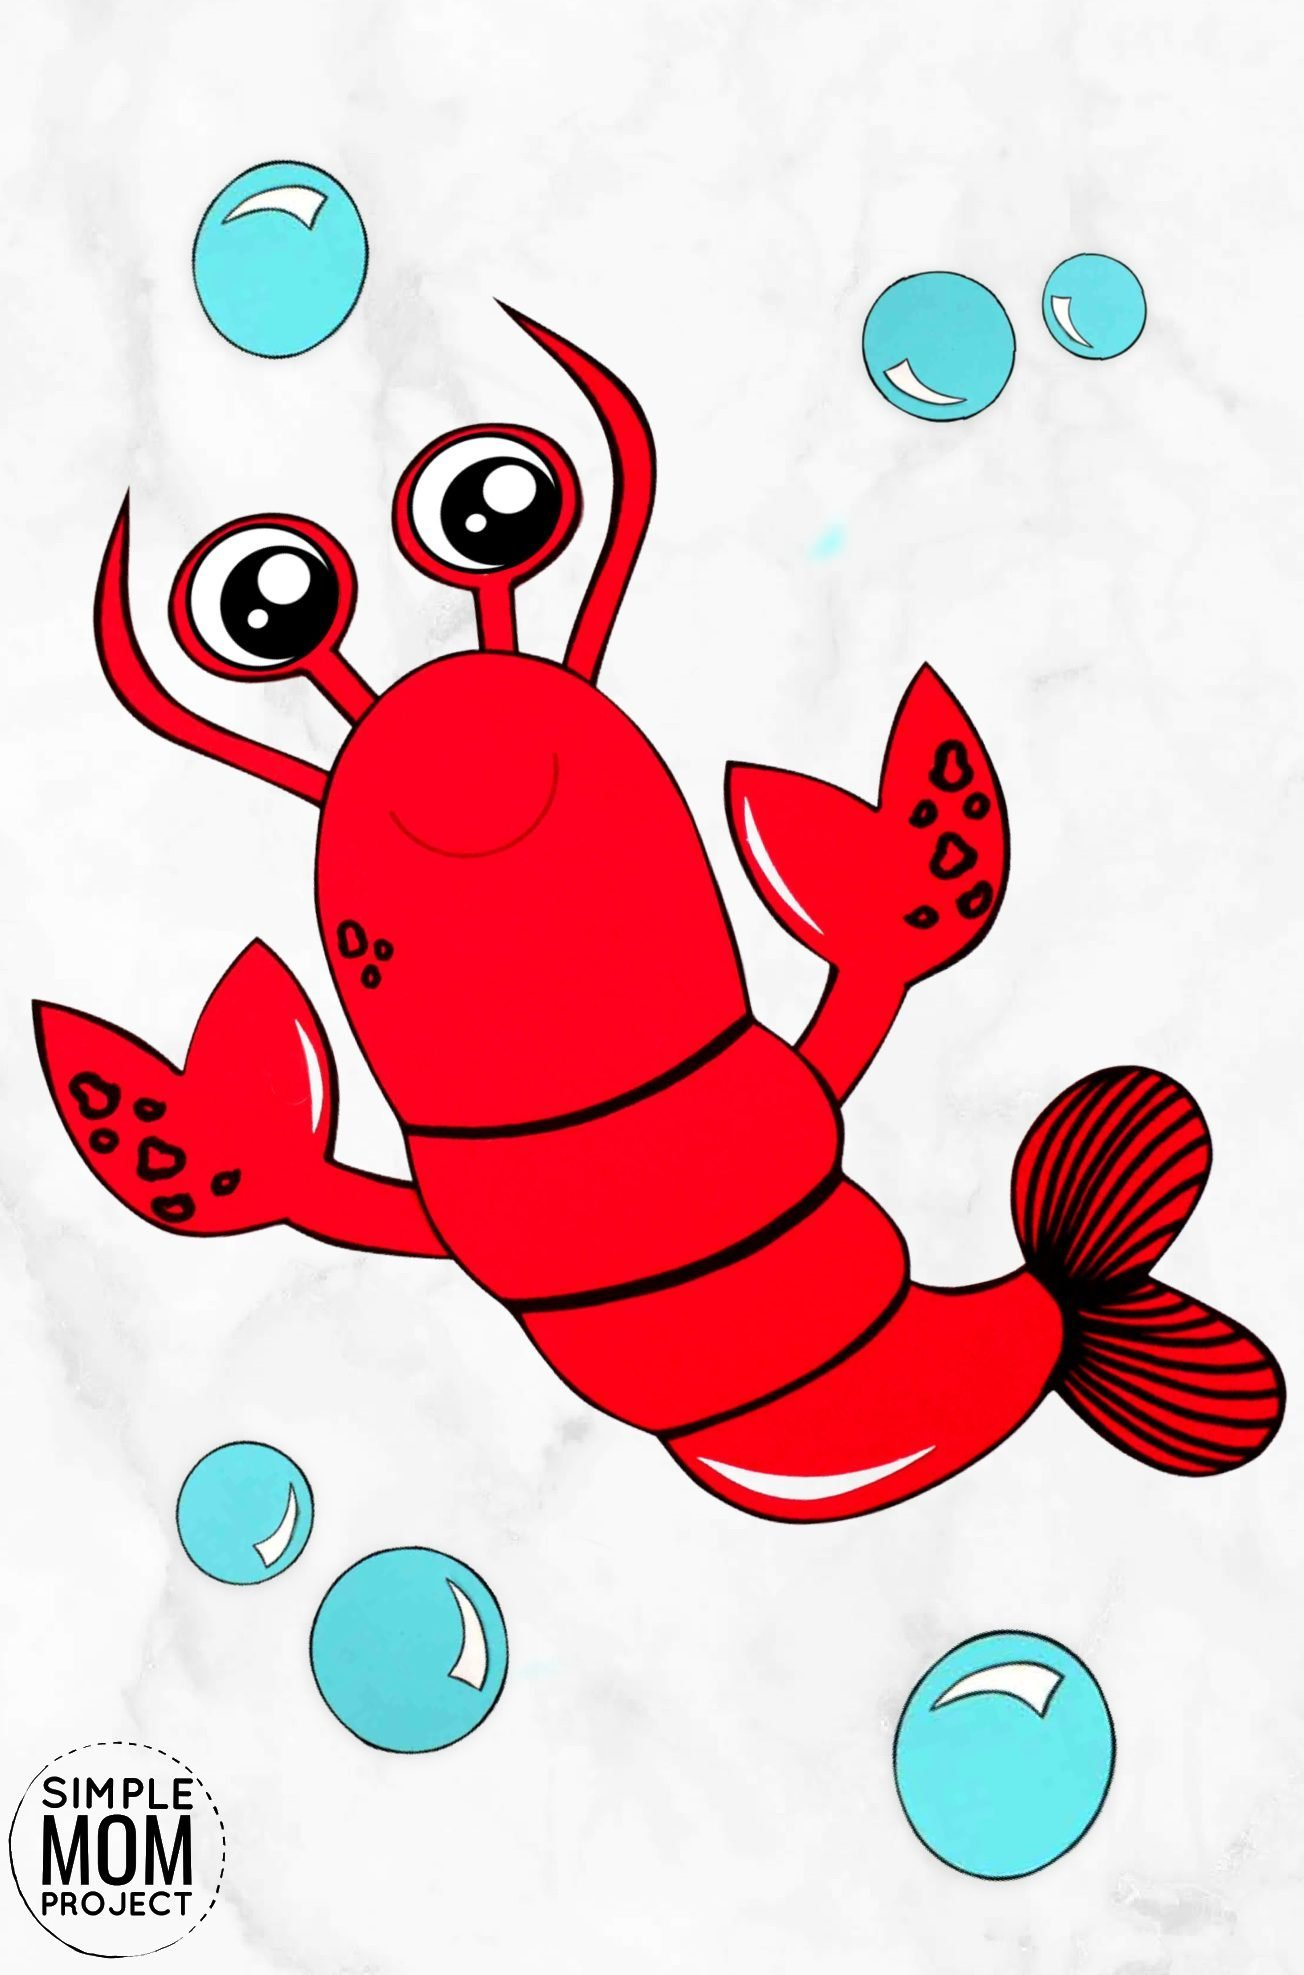 Free Printable Ocean Animal Lobster Crafts for kids of all ages, including preschoolers and toddlers